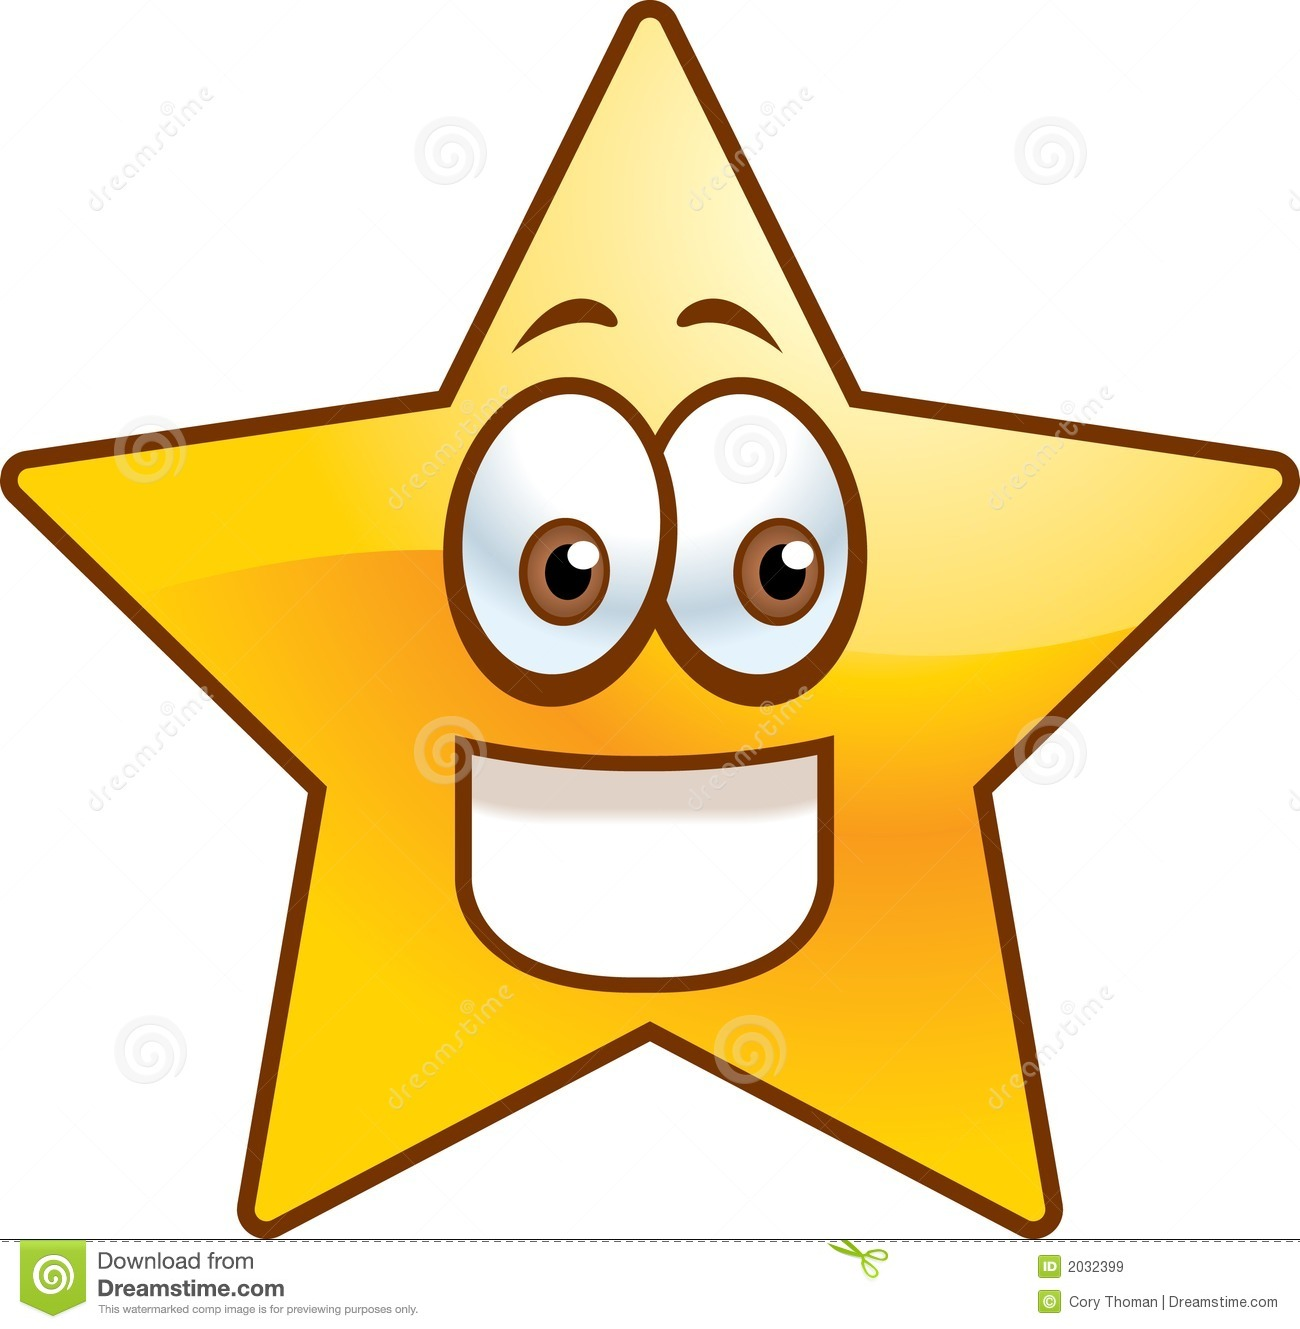 Smiley clipart gold star Free gold%20star%20clipart%20no%20background Gold Images Star